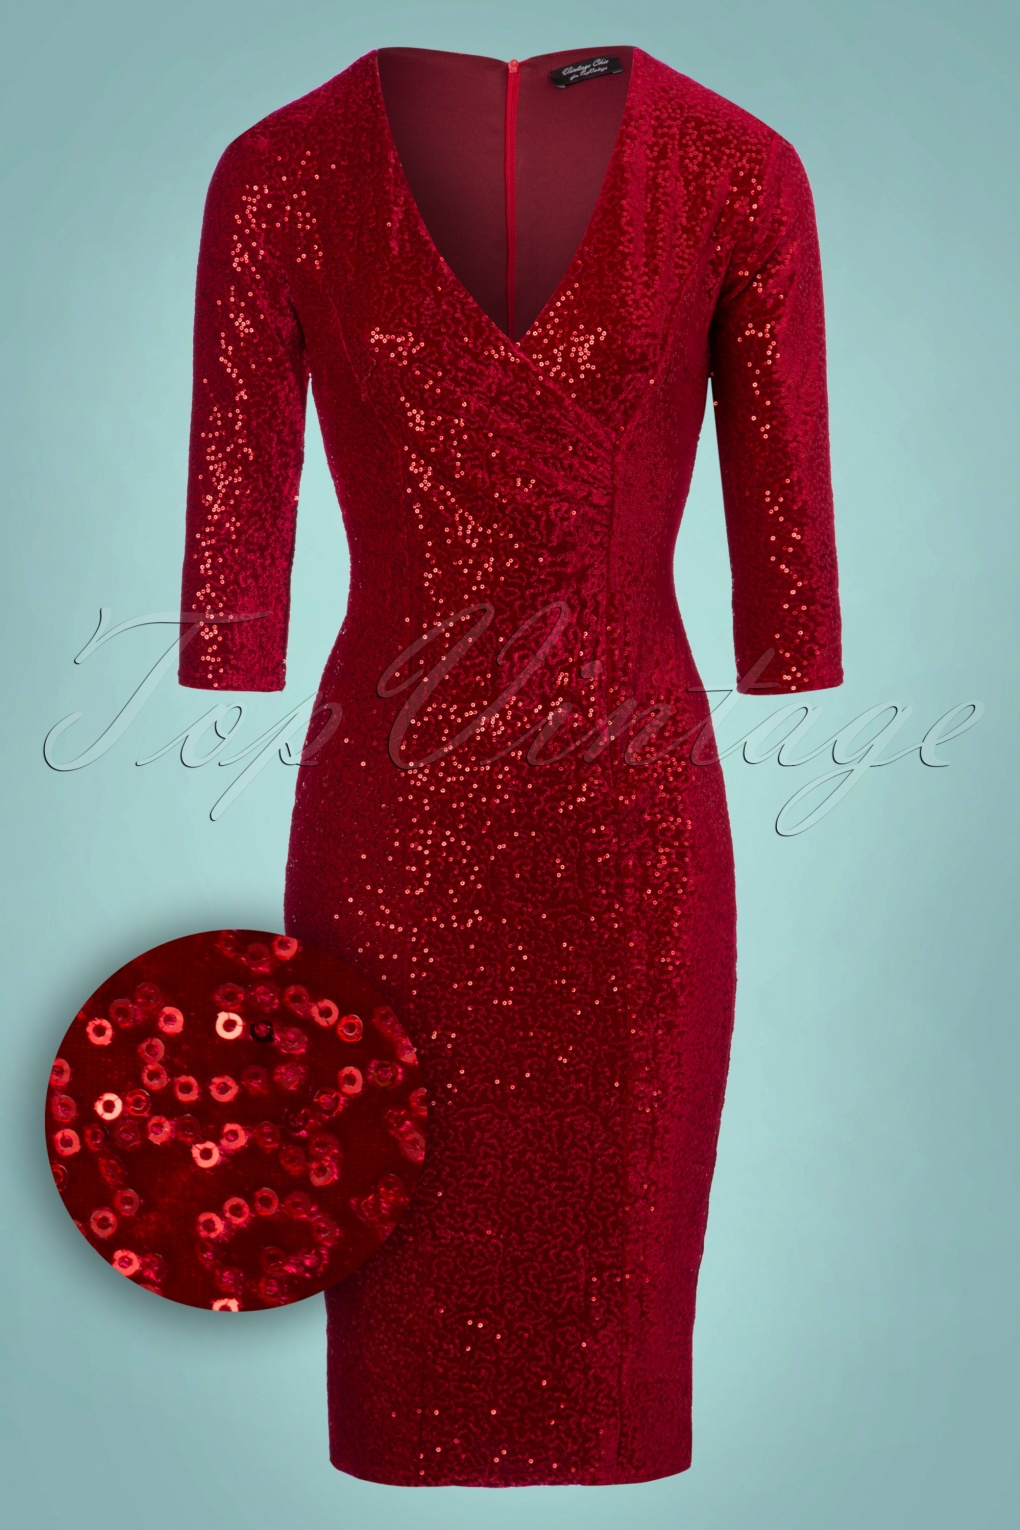 Valentines Day Dresses, Outfits, Lingerie | Red Dresses 50s Marci Sequin  Pencil Dress In